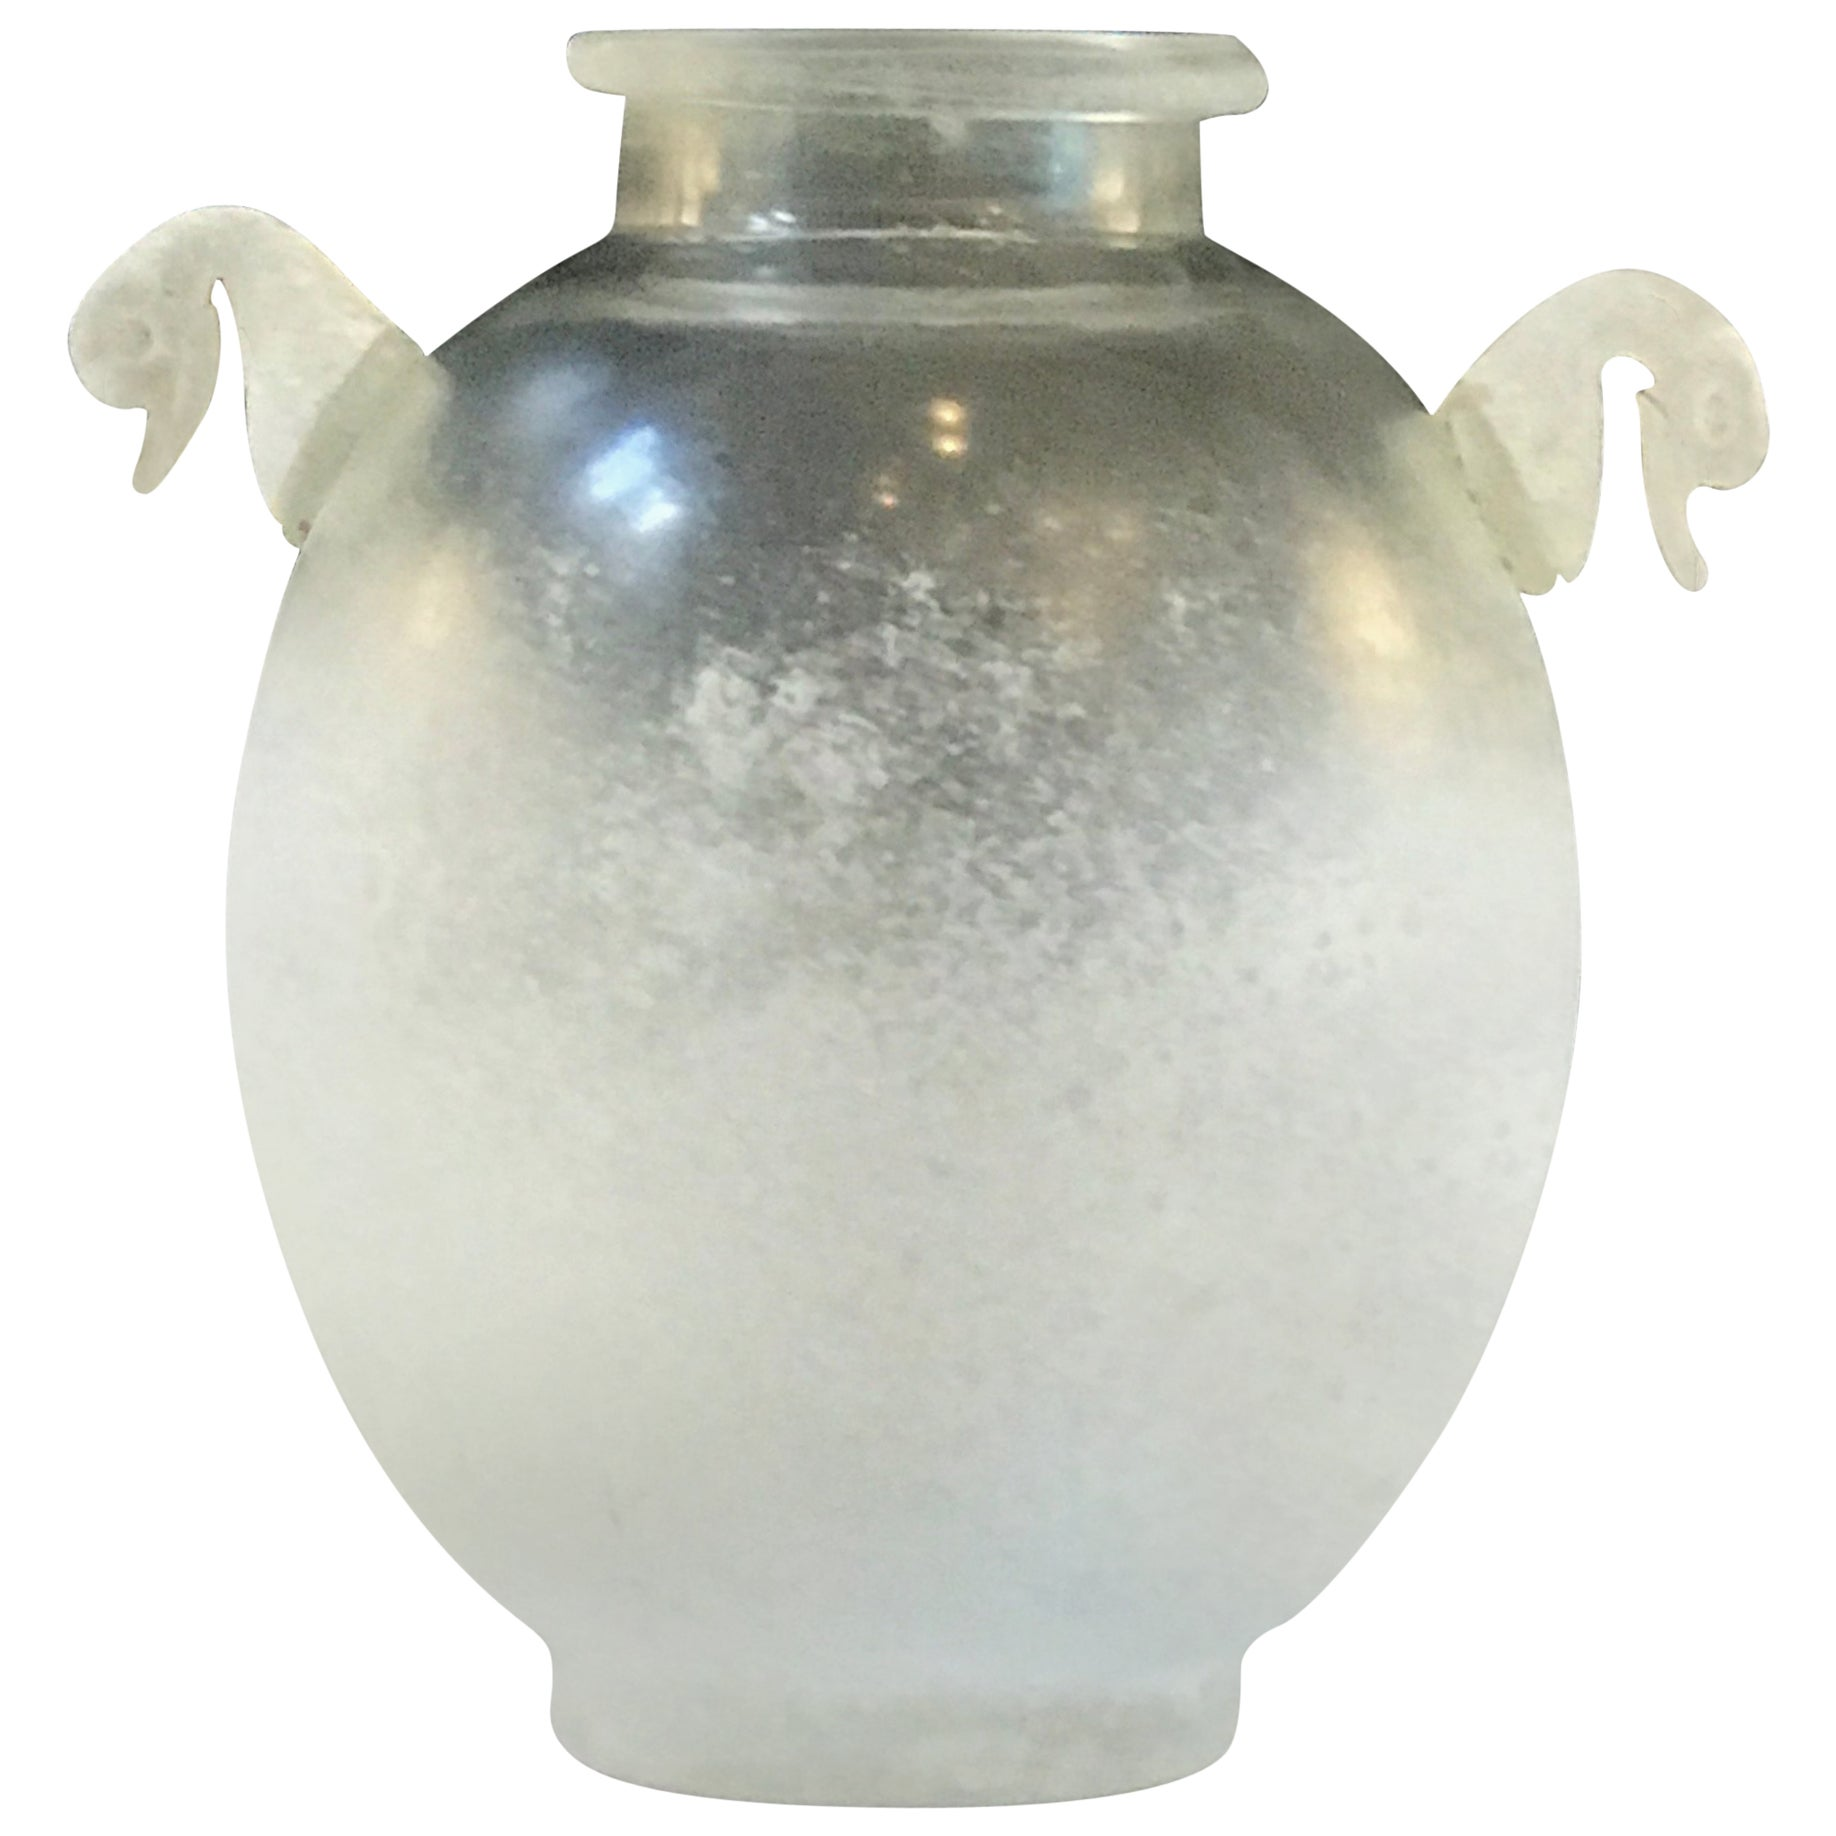 Seguso Vetri d'Arte Scavo Glass Handled Vase, Attributed to Flavio Poli